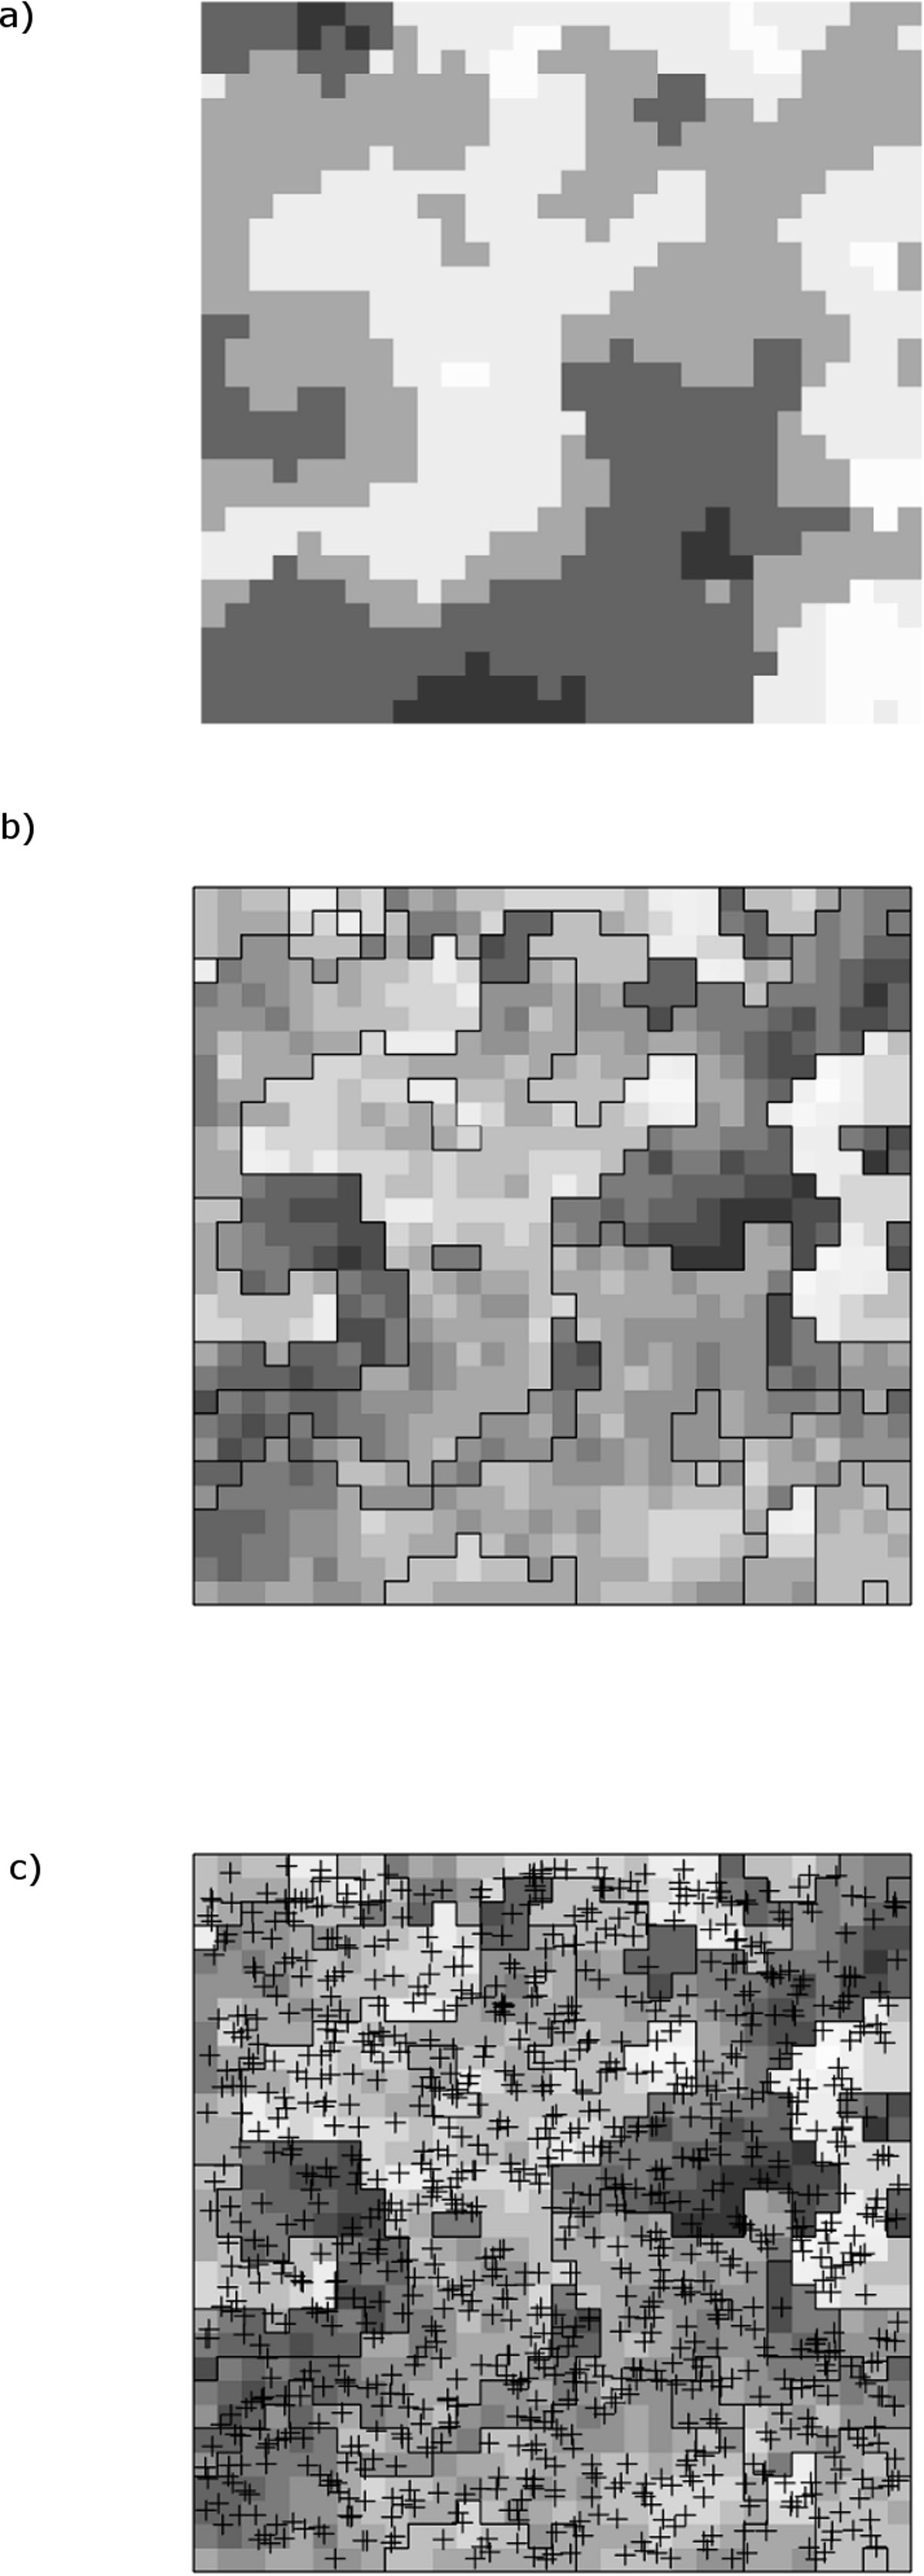 https://static-content.springer.com/image/art%3A10.1186%2F2192-1709-1-3/MediaObjects/13717_2011_Article_3_Fig2_HTML.jpg